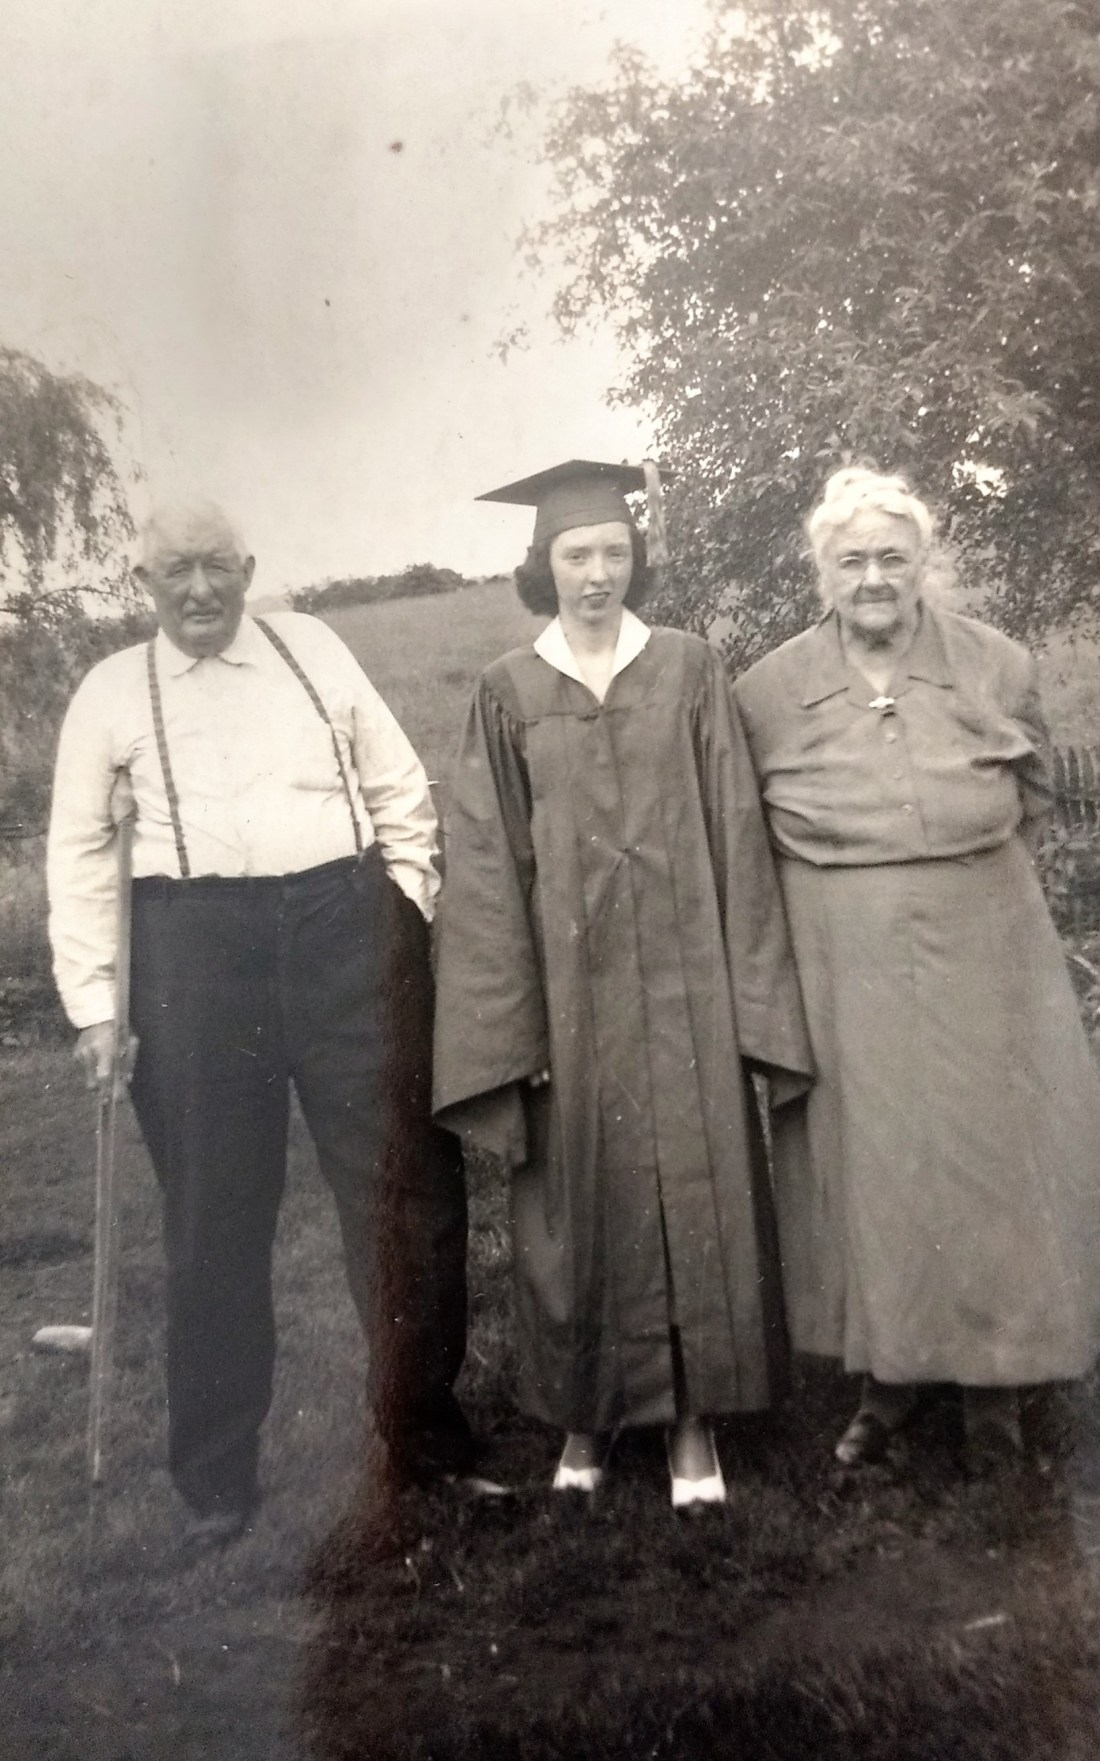 Grandad Garman, Helen, Grandma Garman 1950